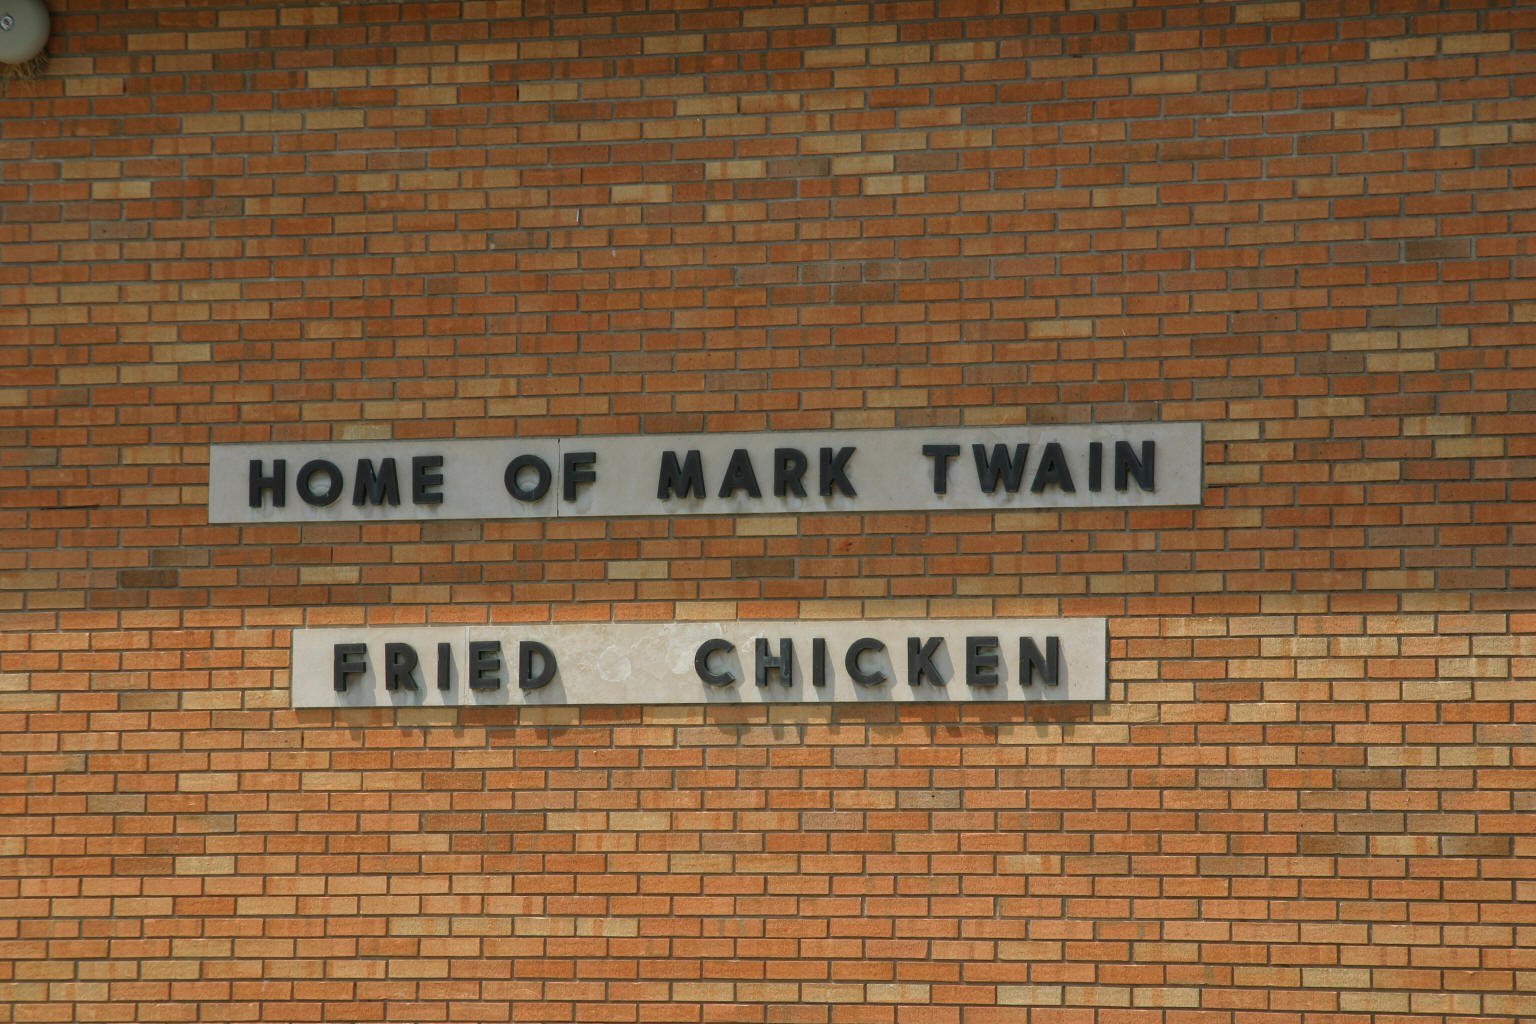 """Home of Mark Twain Fried Chicken""??"